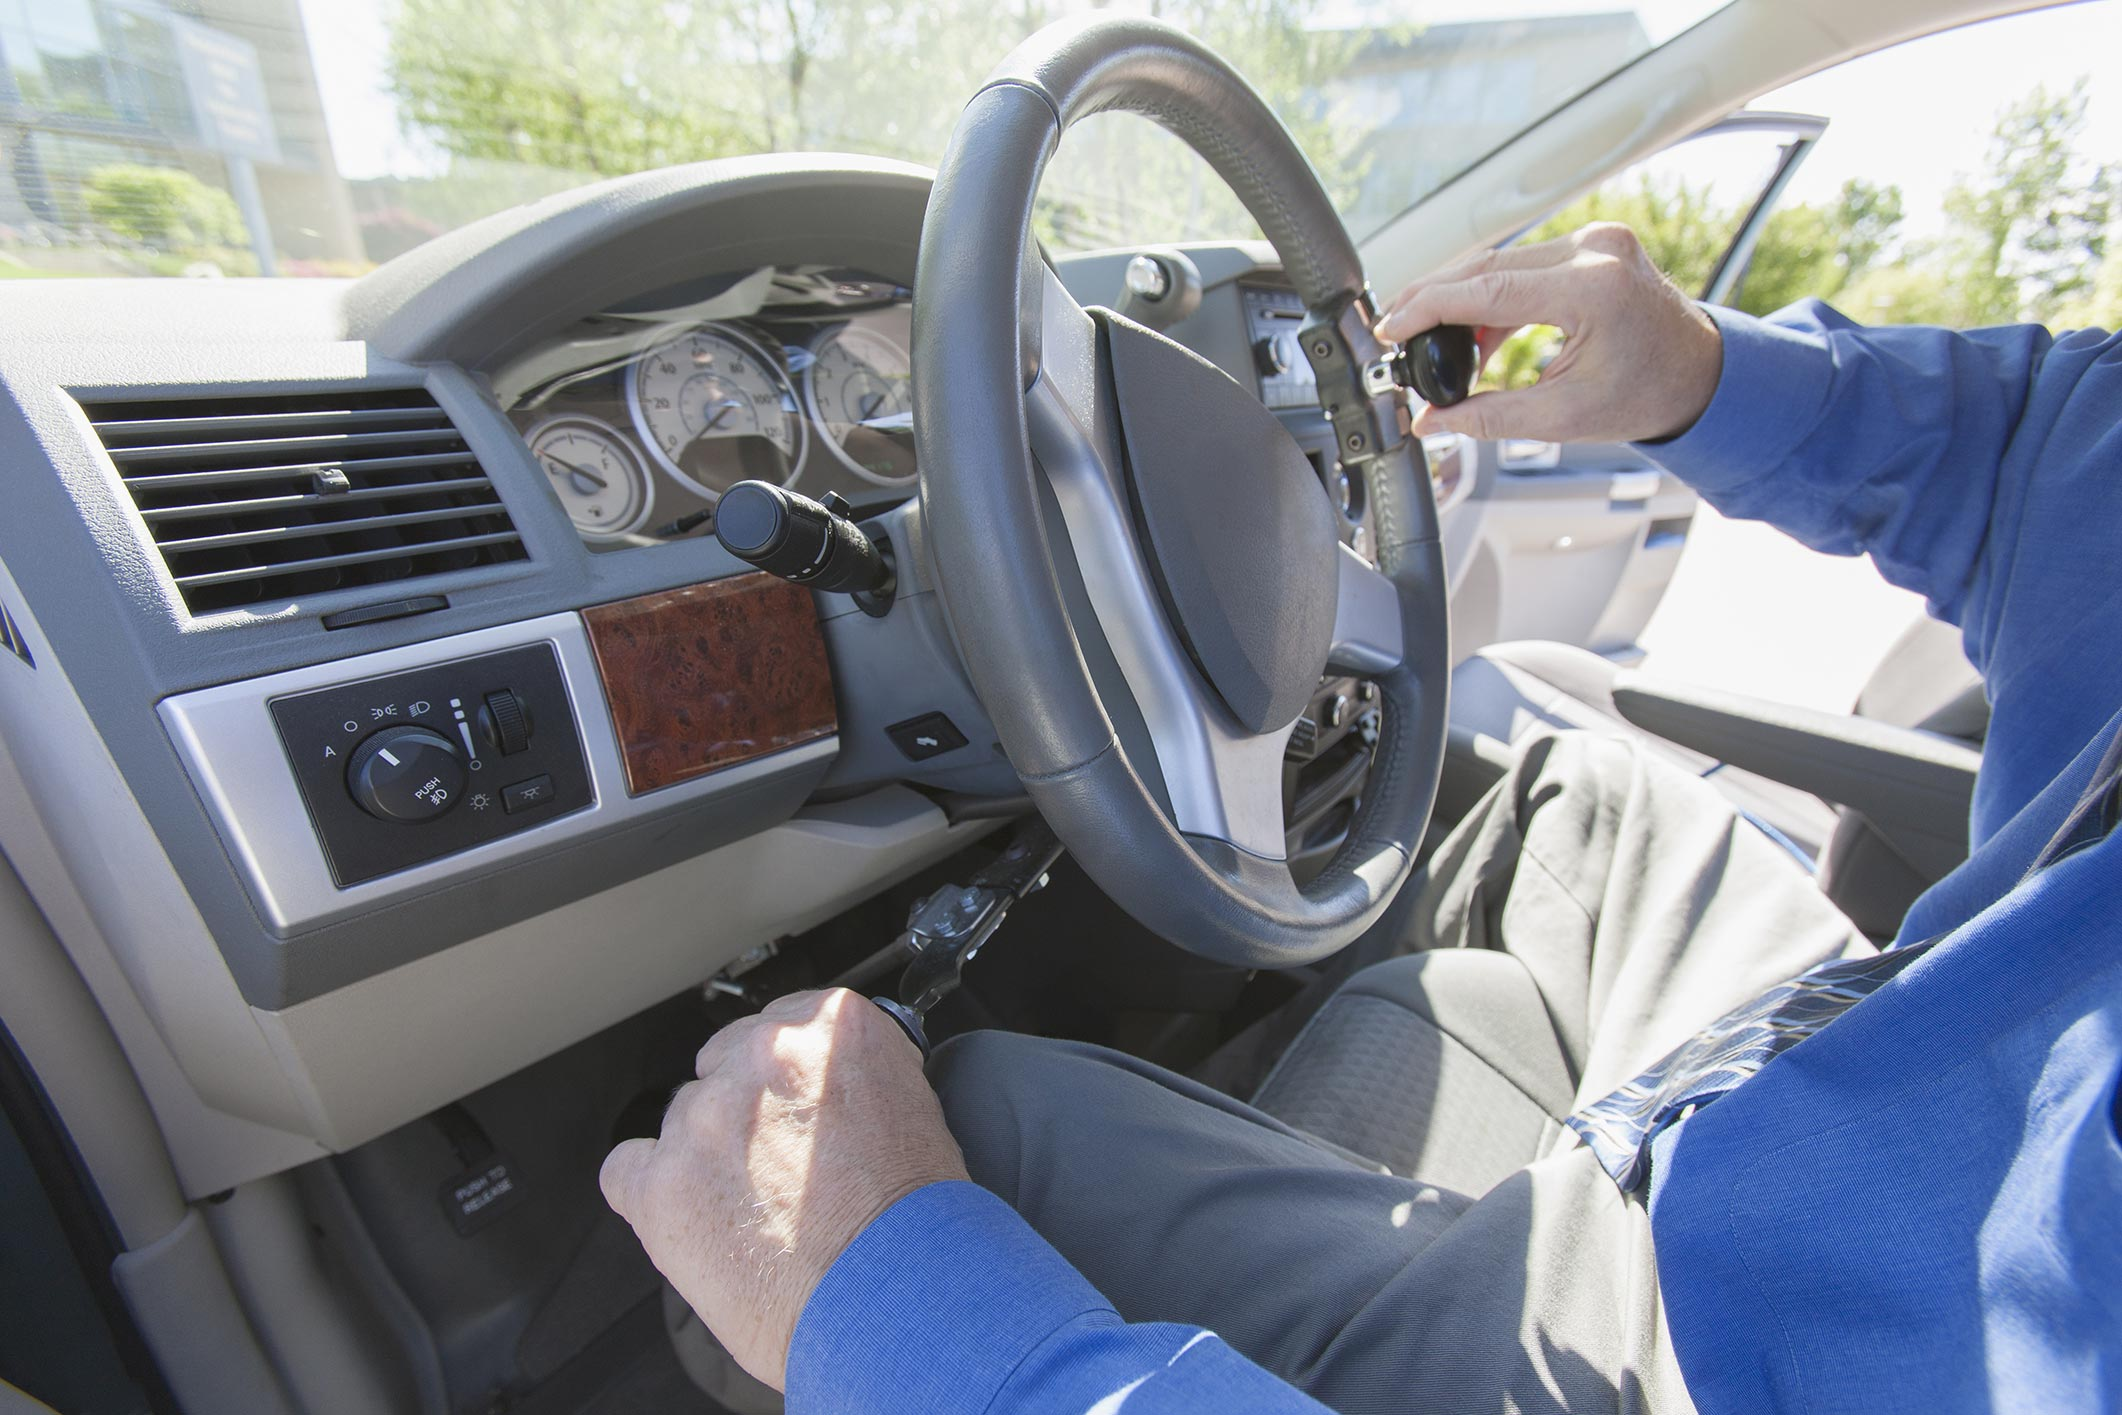 DRIVER AND VEHICLE MODIFICATION ASSESSMENT AND TREATMENT